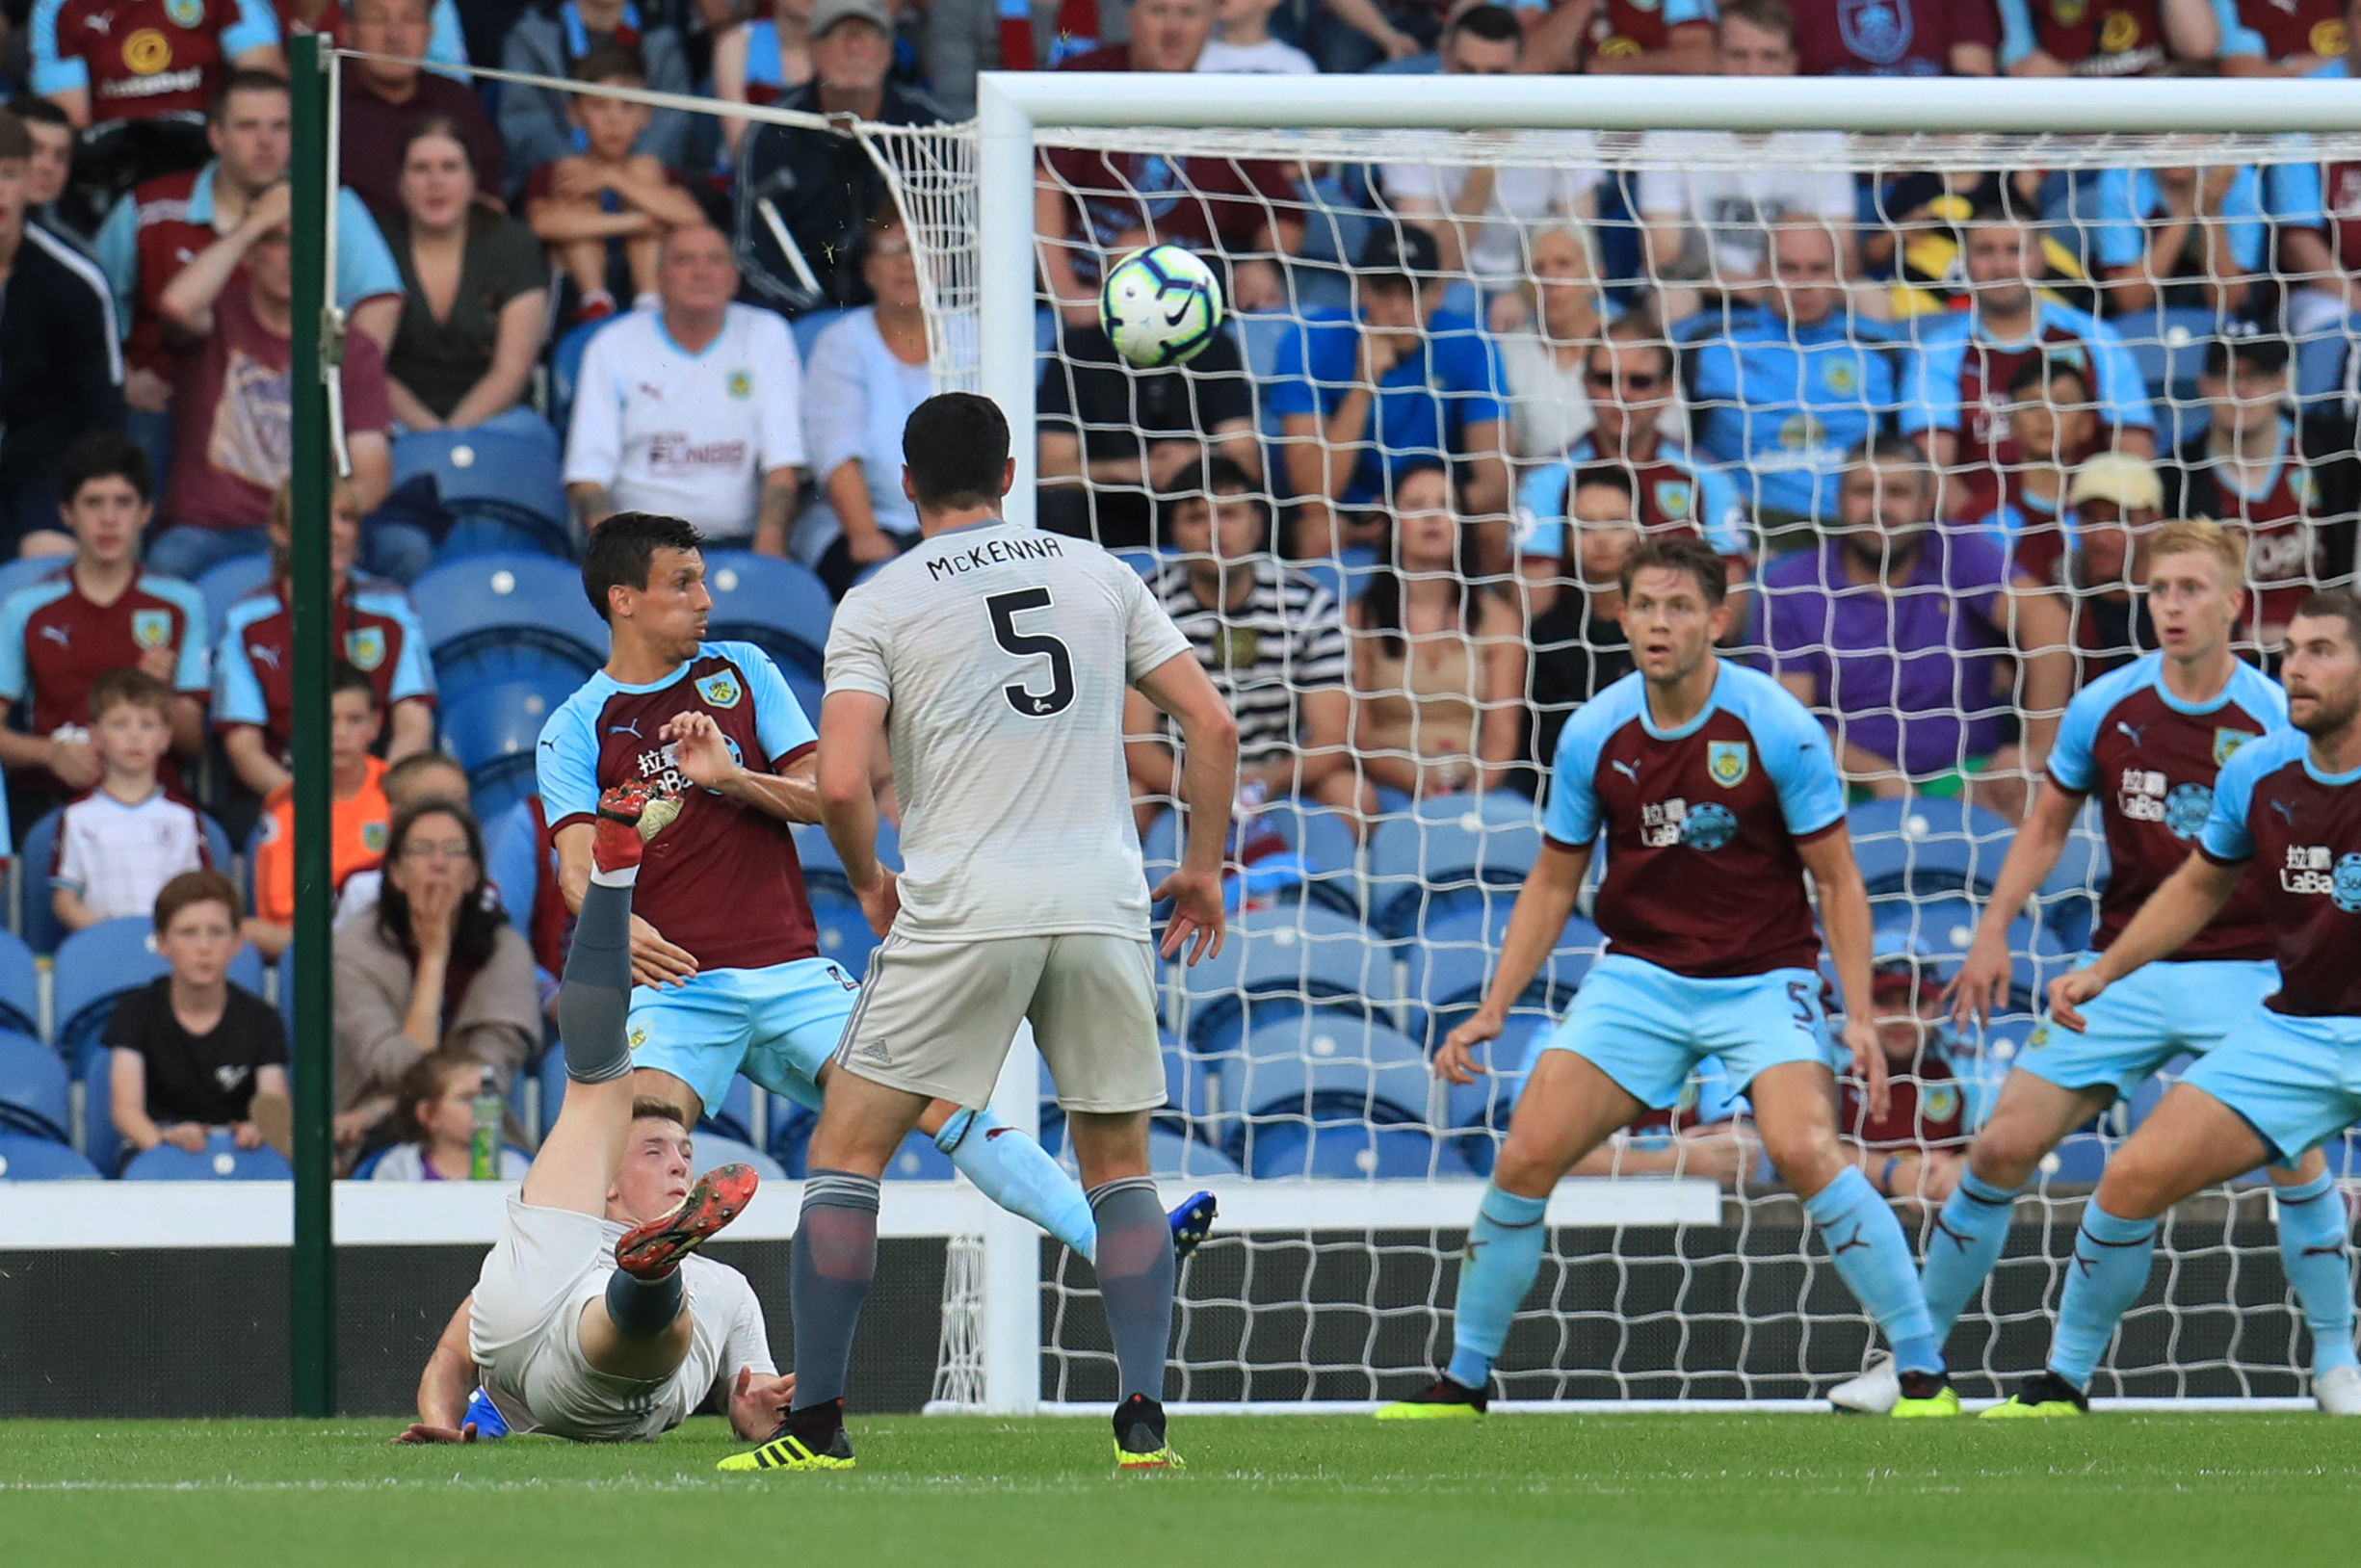 Burnley's Lewis Ferguson	scores his sides first goal of the game making the score 1-1 during the UEFA Europa League, second qualifying round, second leg match at Turf Moor, Burnley.